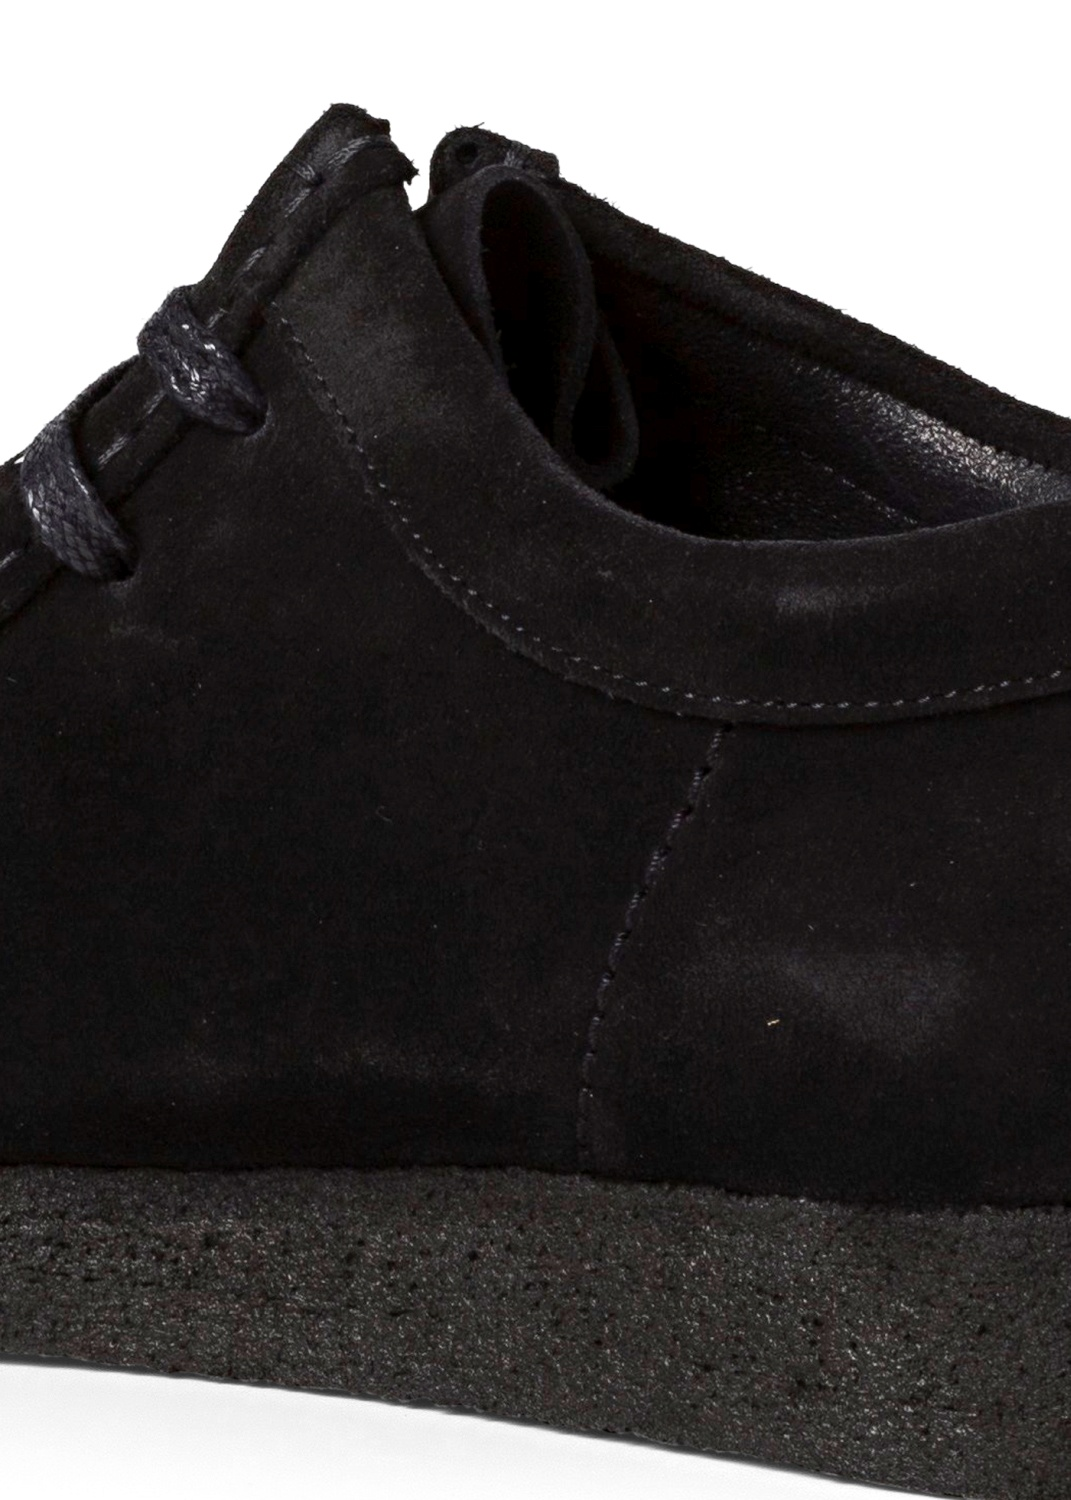 WALLABEE SUEDE  BLACK WHITE image number 3